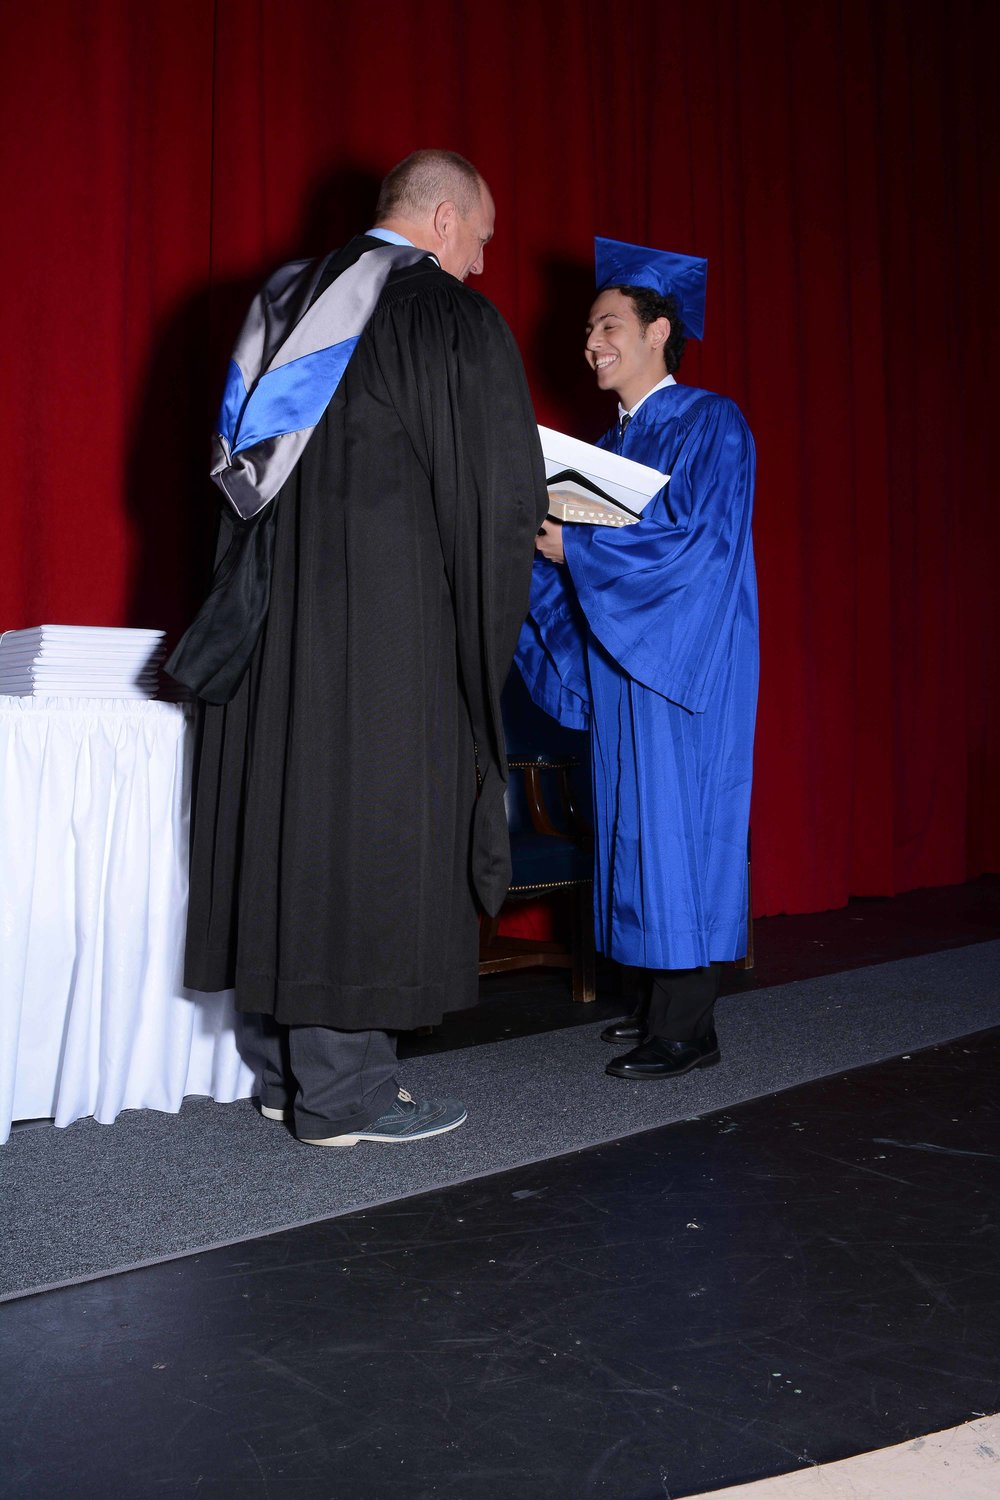 May14 Commencement46.jpg